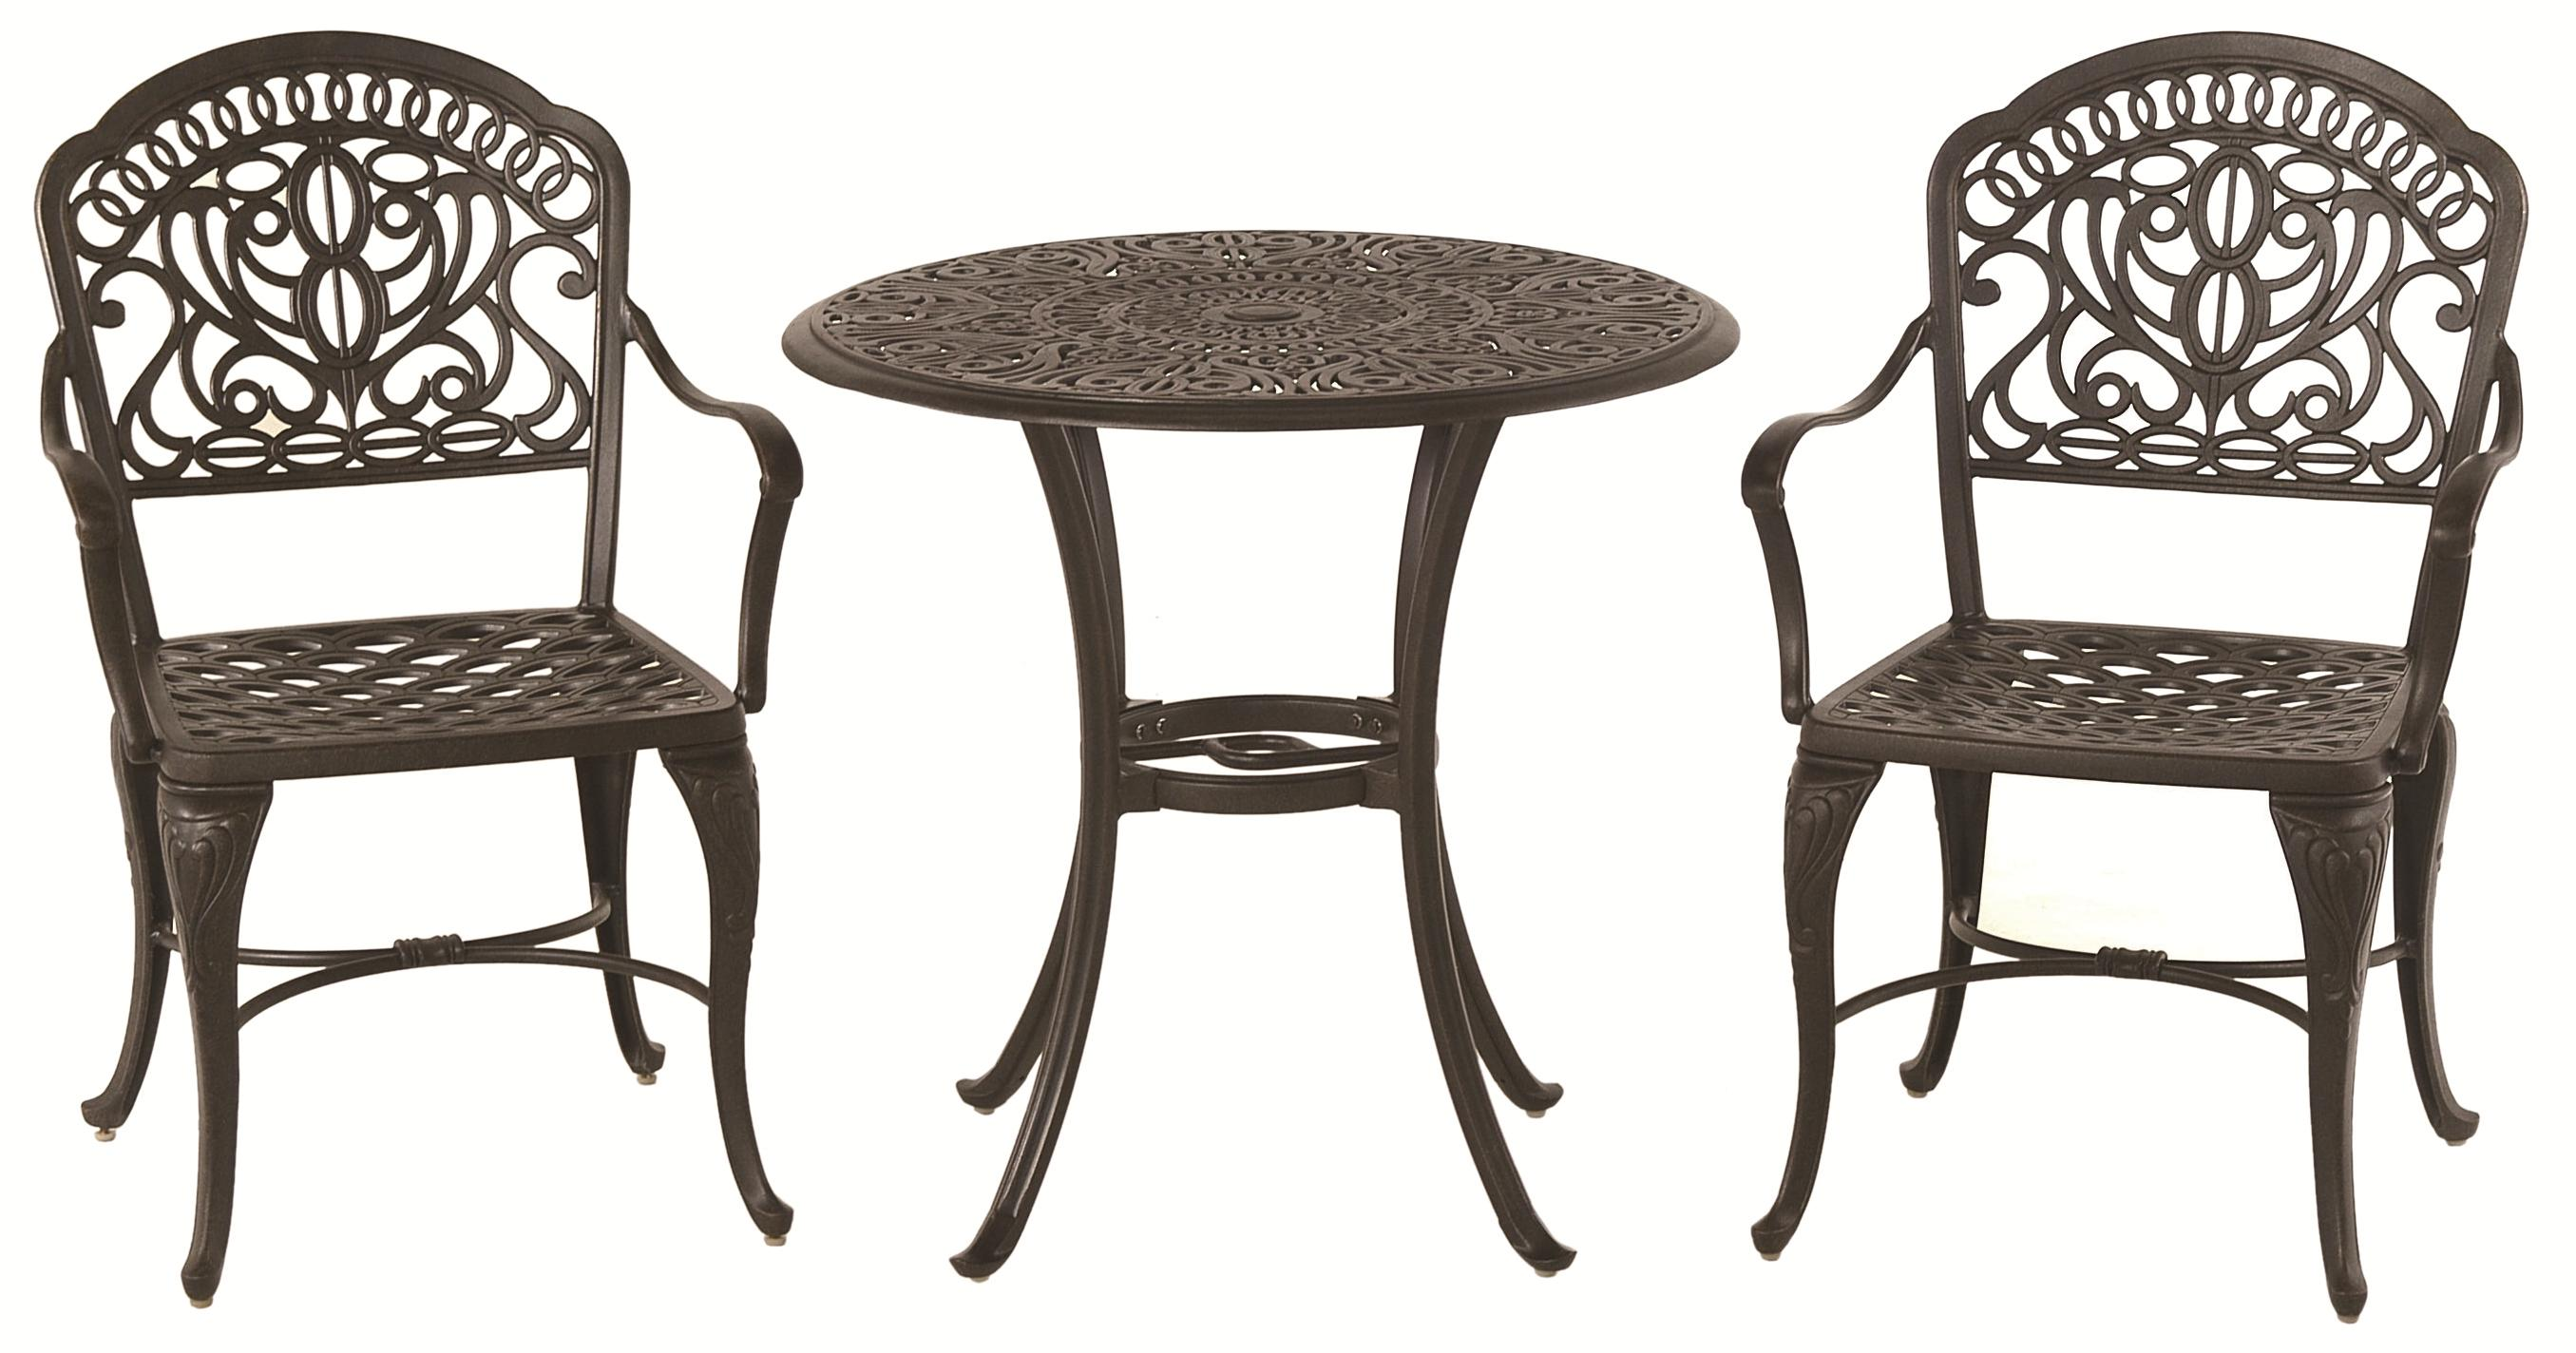 Luxury Hanamint Tuscany Patio Furniture Luxury